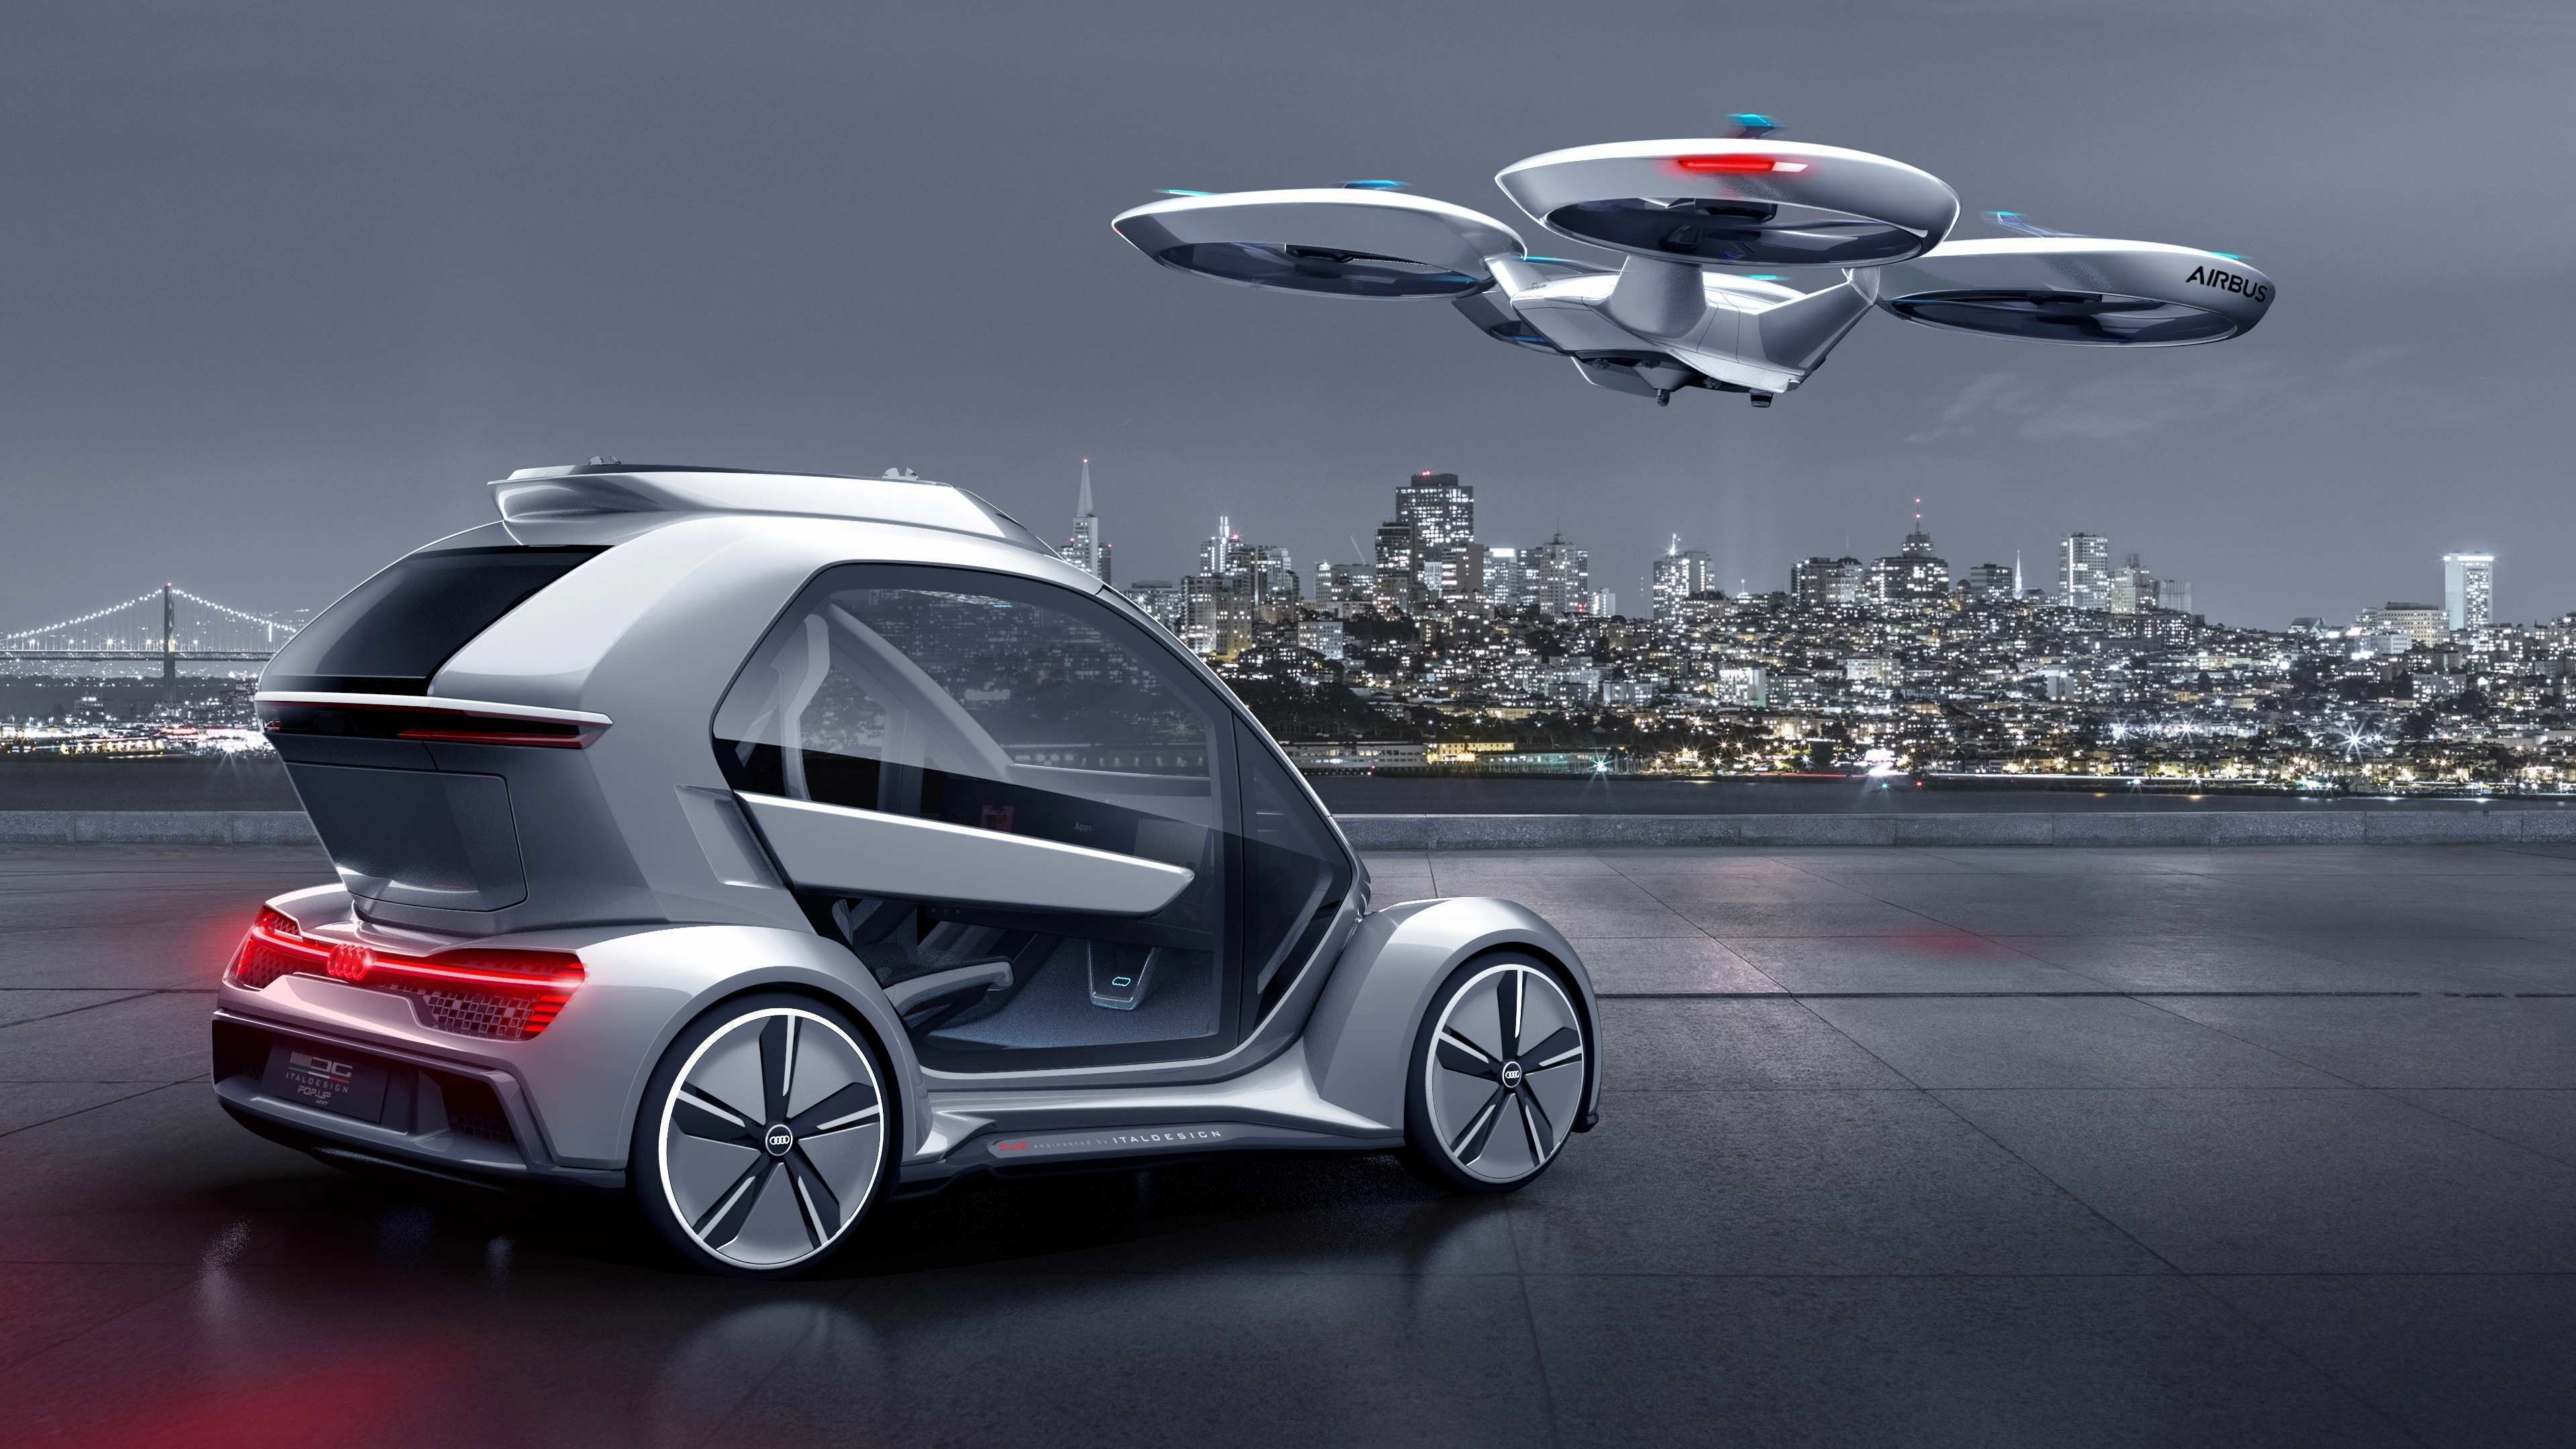 63 The The Volvo Flying Car 2019 Engine Release Date with The Volvo Flying Car 2019 Engine